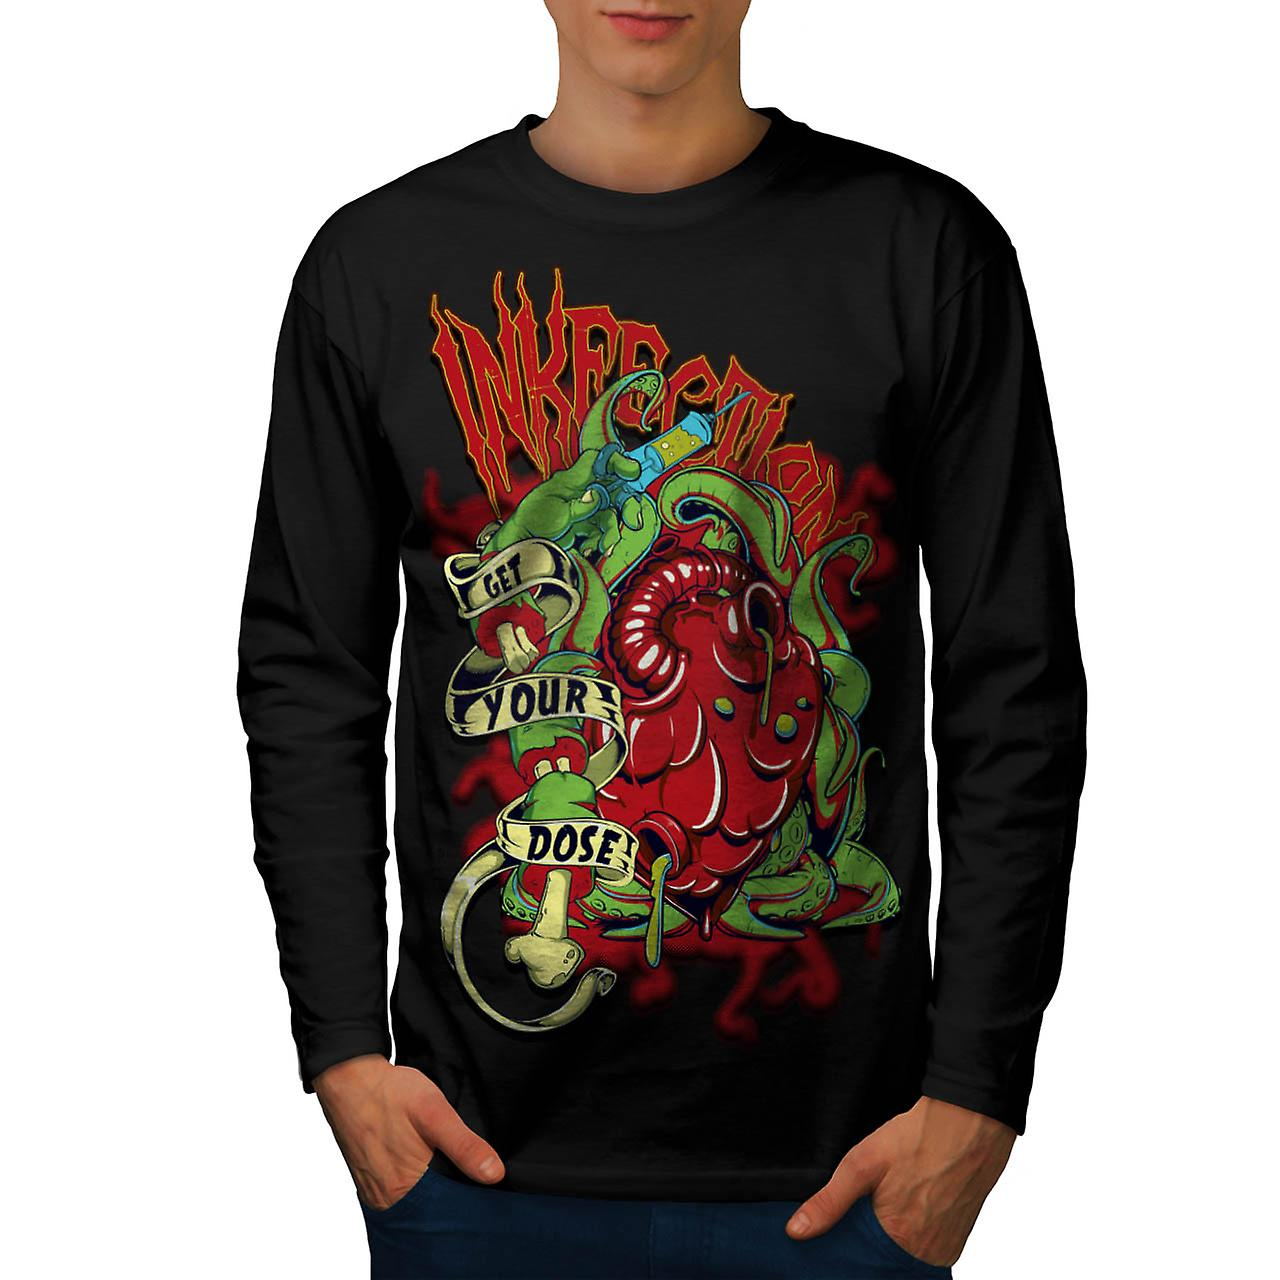 Ink Infection Tattoo Death Dose Men Black Long Sleeve T-shirt | Wellcoda